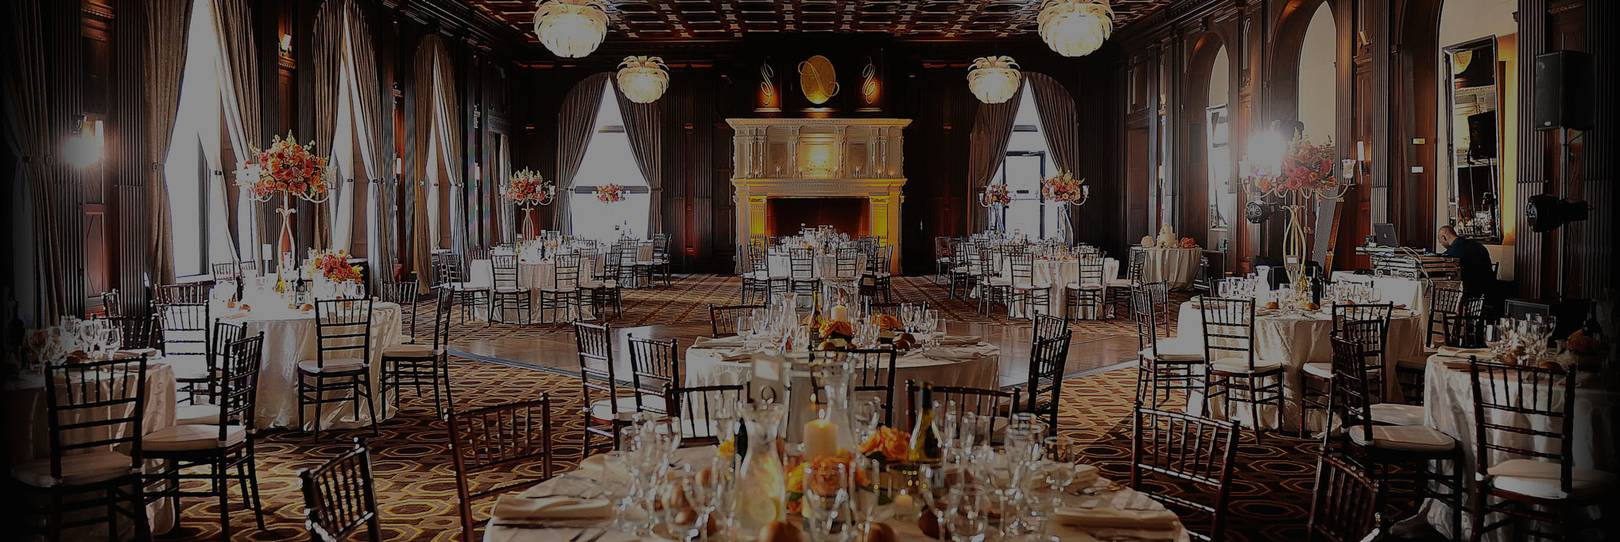 Wedding Spot: Julia Morgan Ballroom